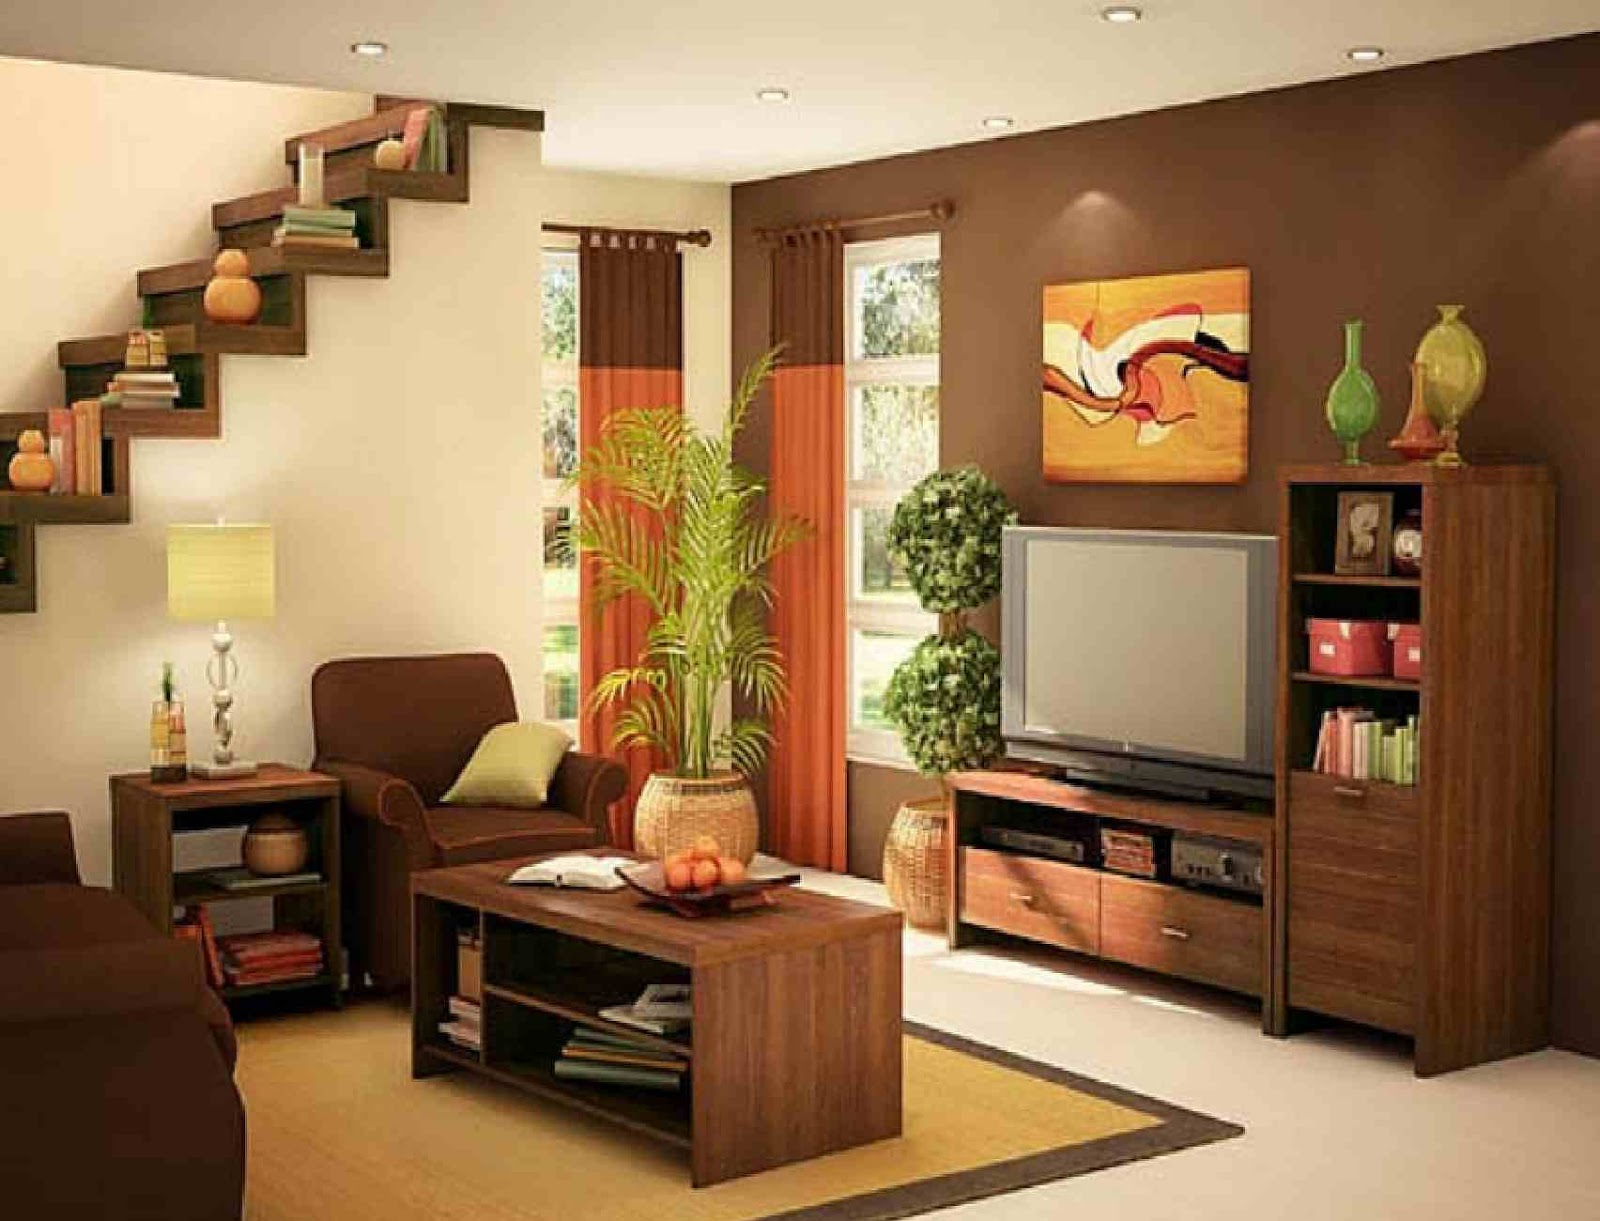 Home interior designs simple living room designs for Home living room interior design ideas